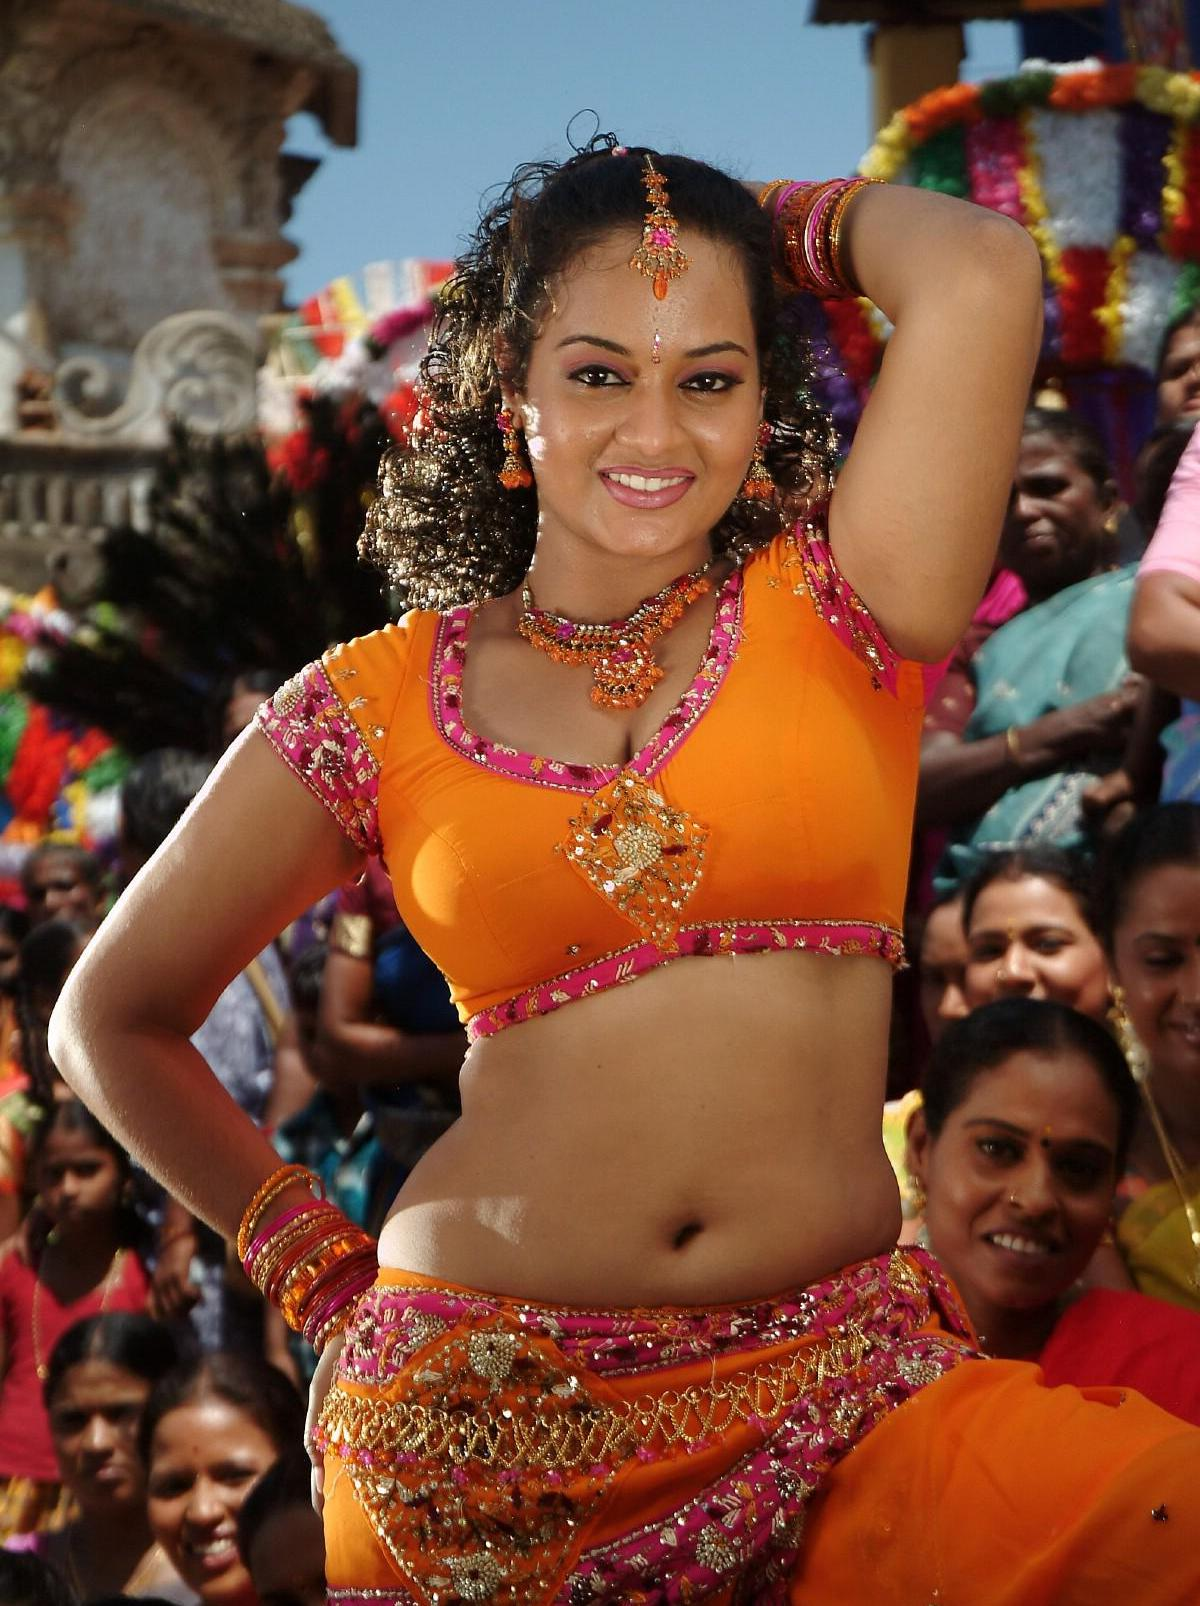 Tamil Actress Hot Image Navel Collection